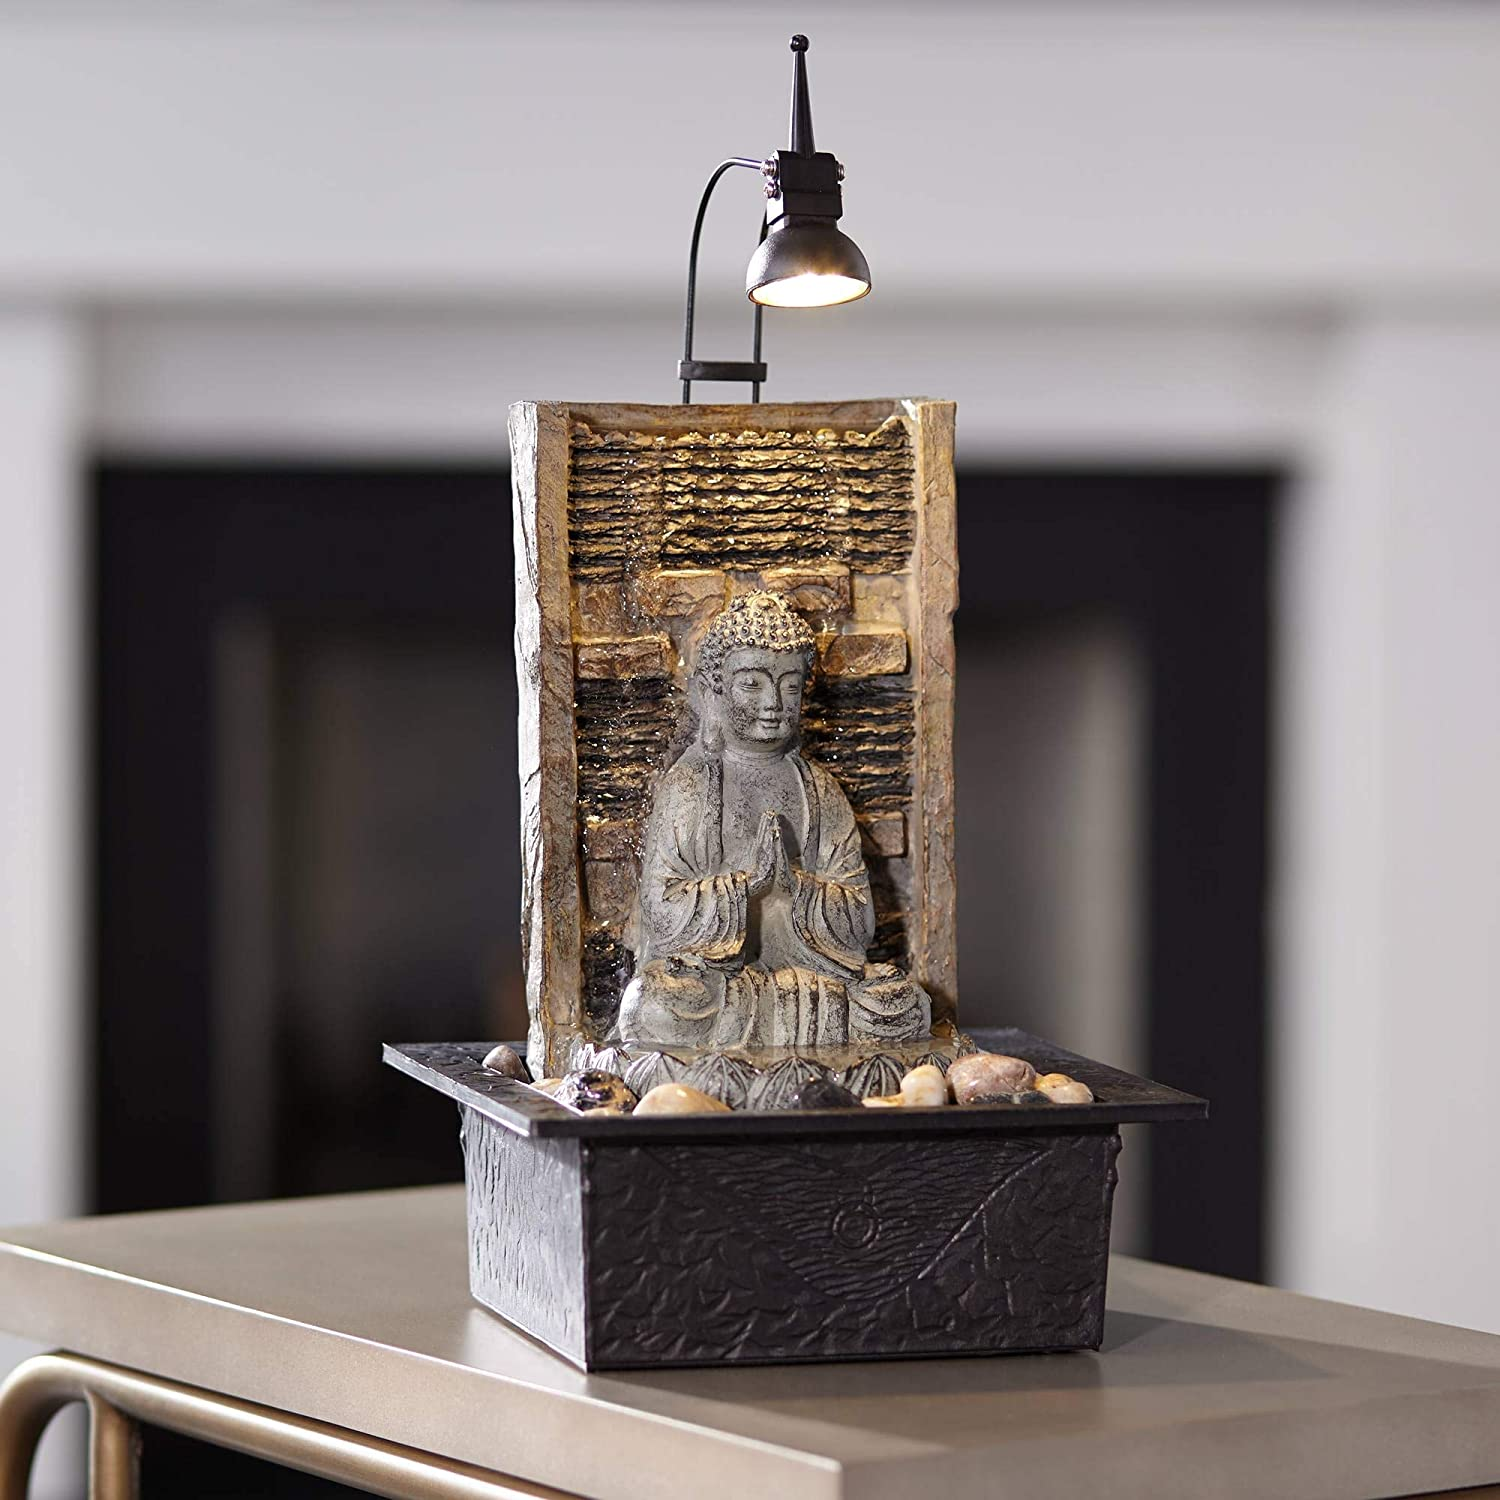 Imprints Plus Thoughtful Siddhartha Buddha Tabletop Water Fountain with 2 Healing Stones and Pouch 4 Pc Bundle 27366